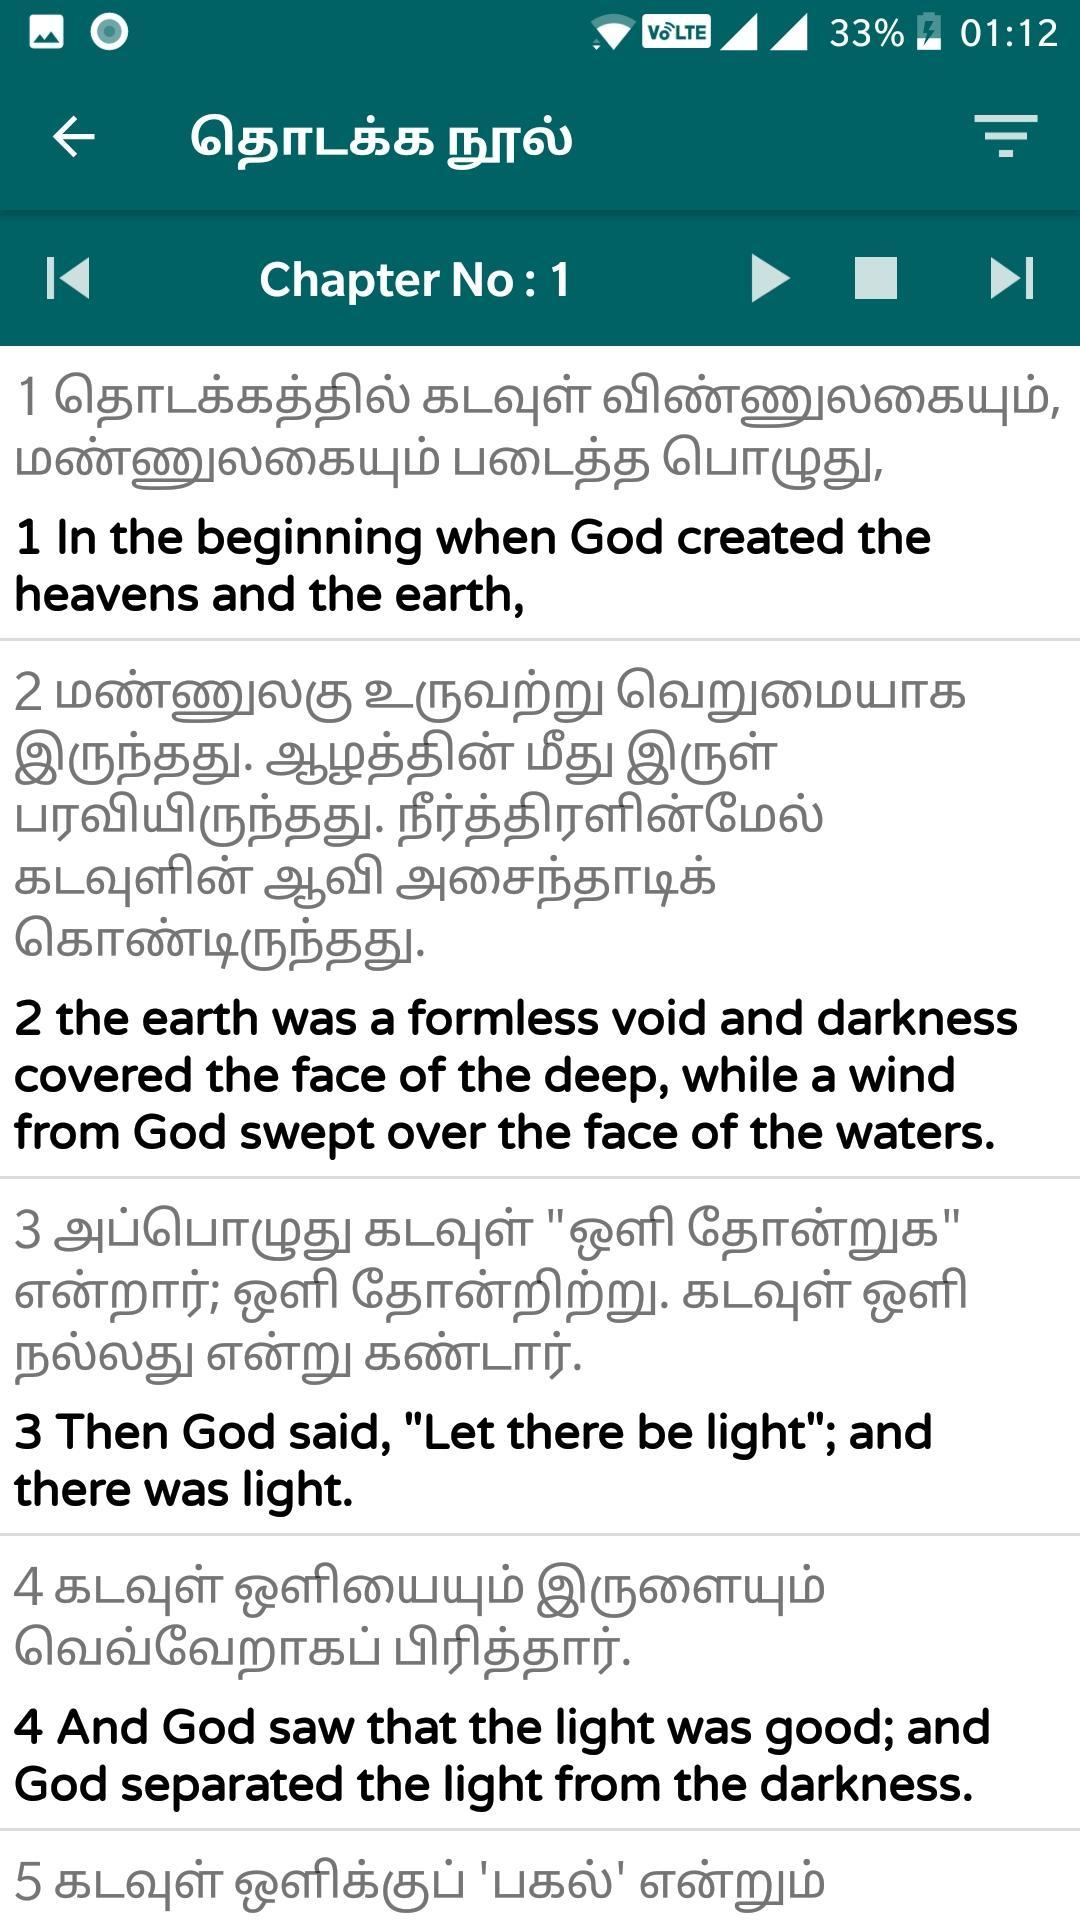 Tamil Catholic Bible - Audio, Readings, Prayers for Android